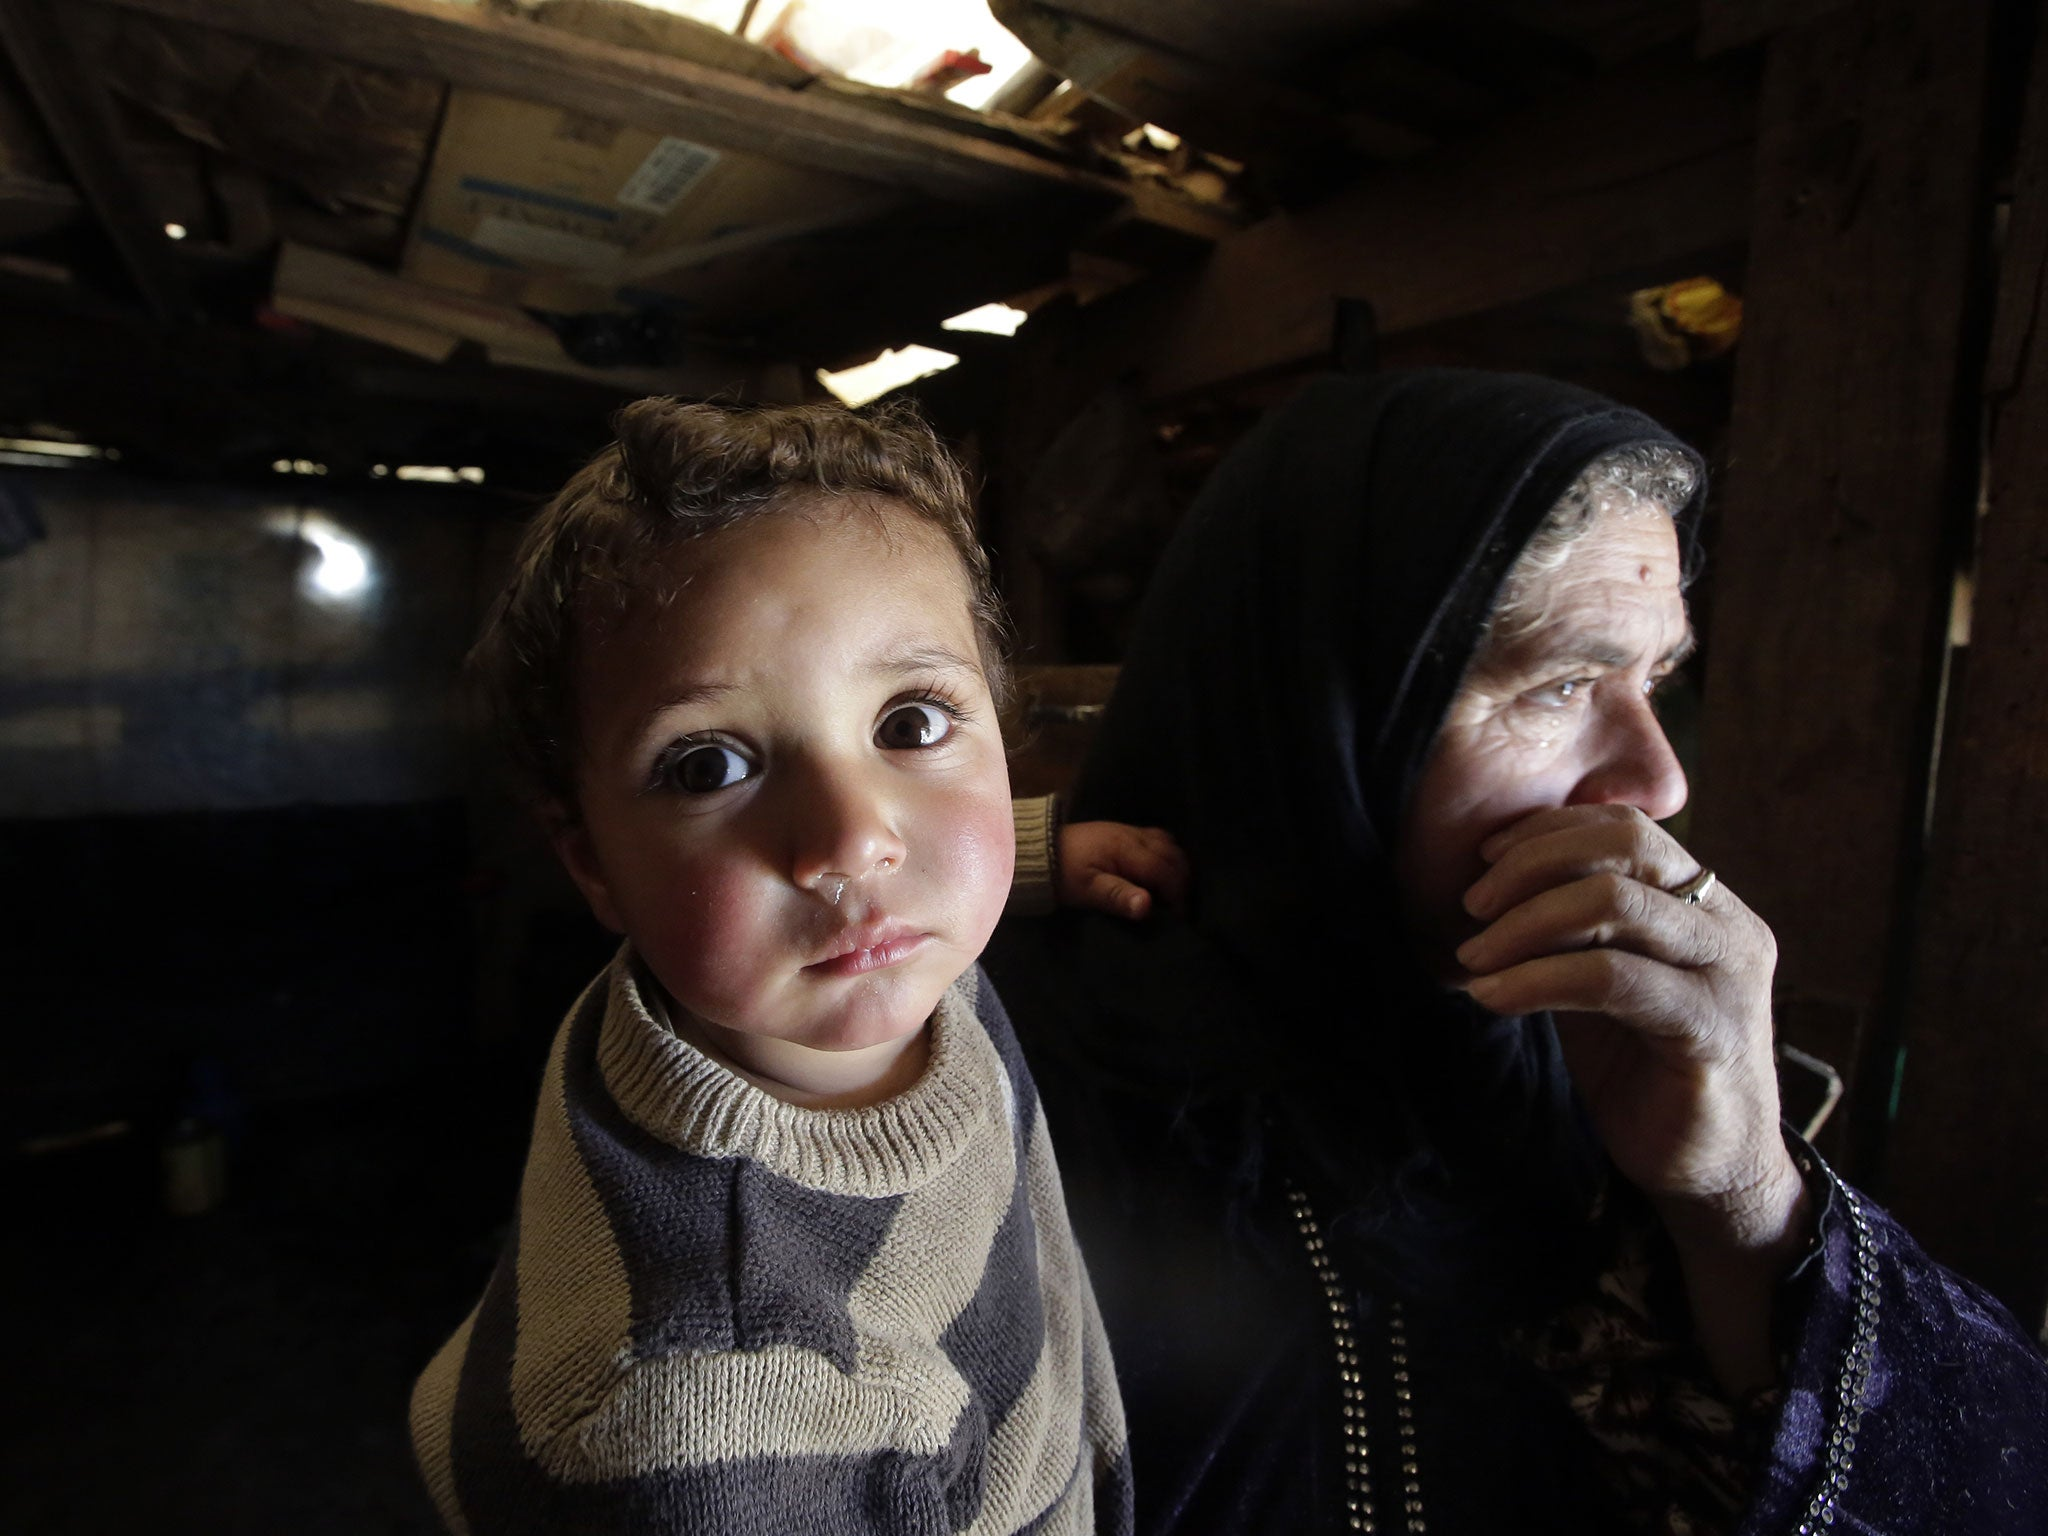 Robert Fisk: The 200,000 Syrian child refugees forced into slave labour in Lebanon